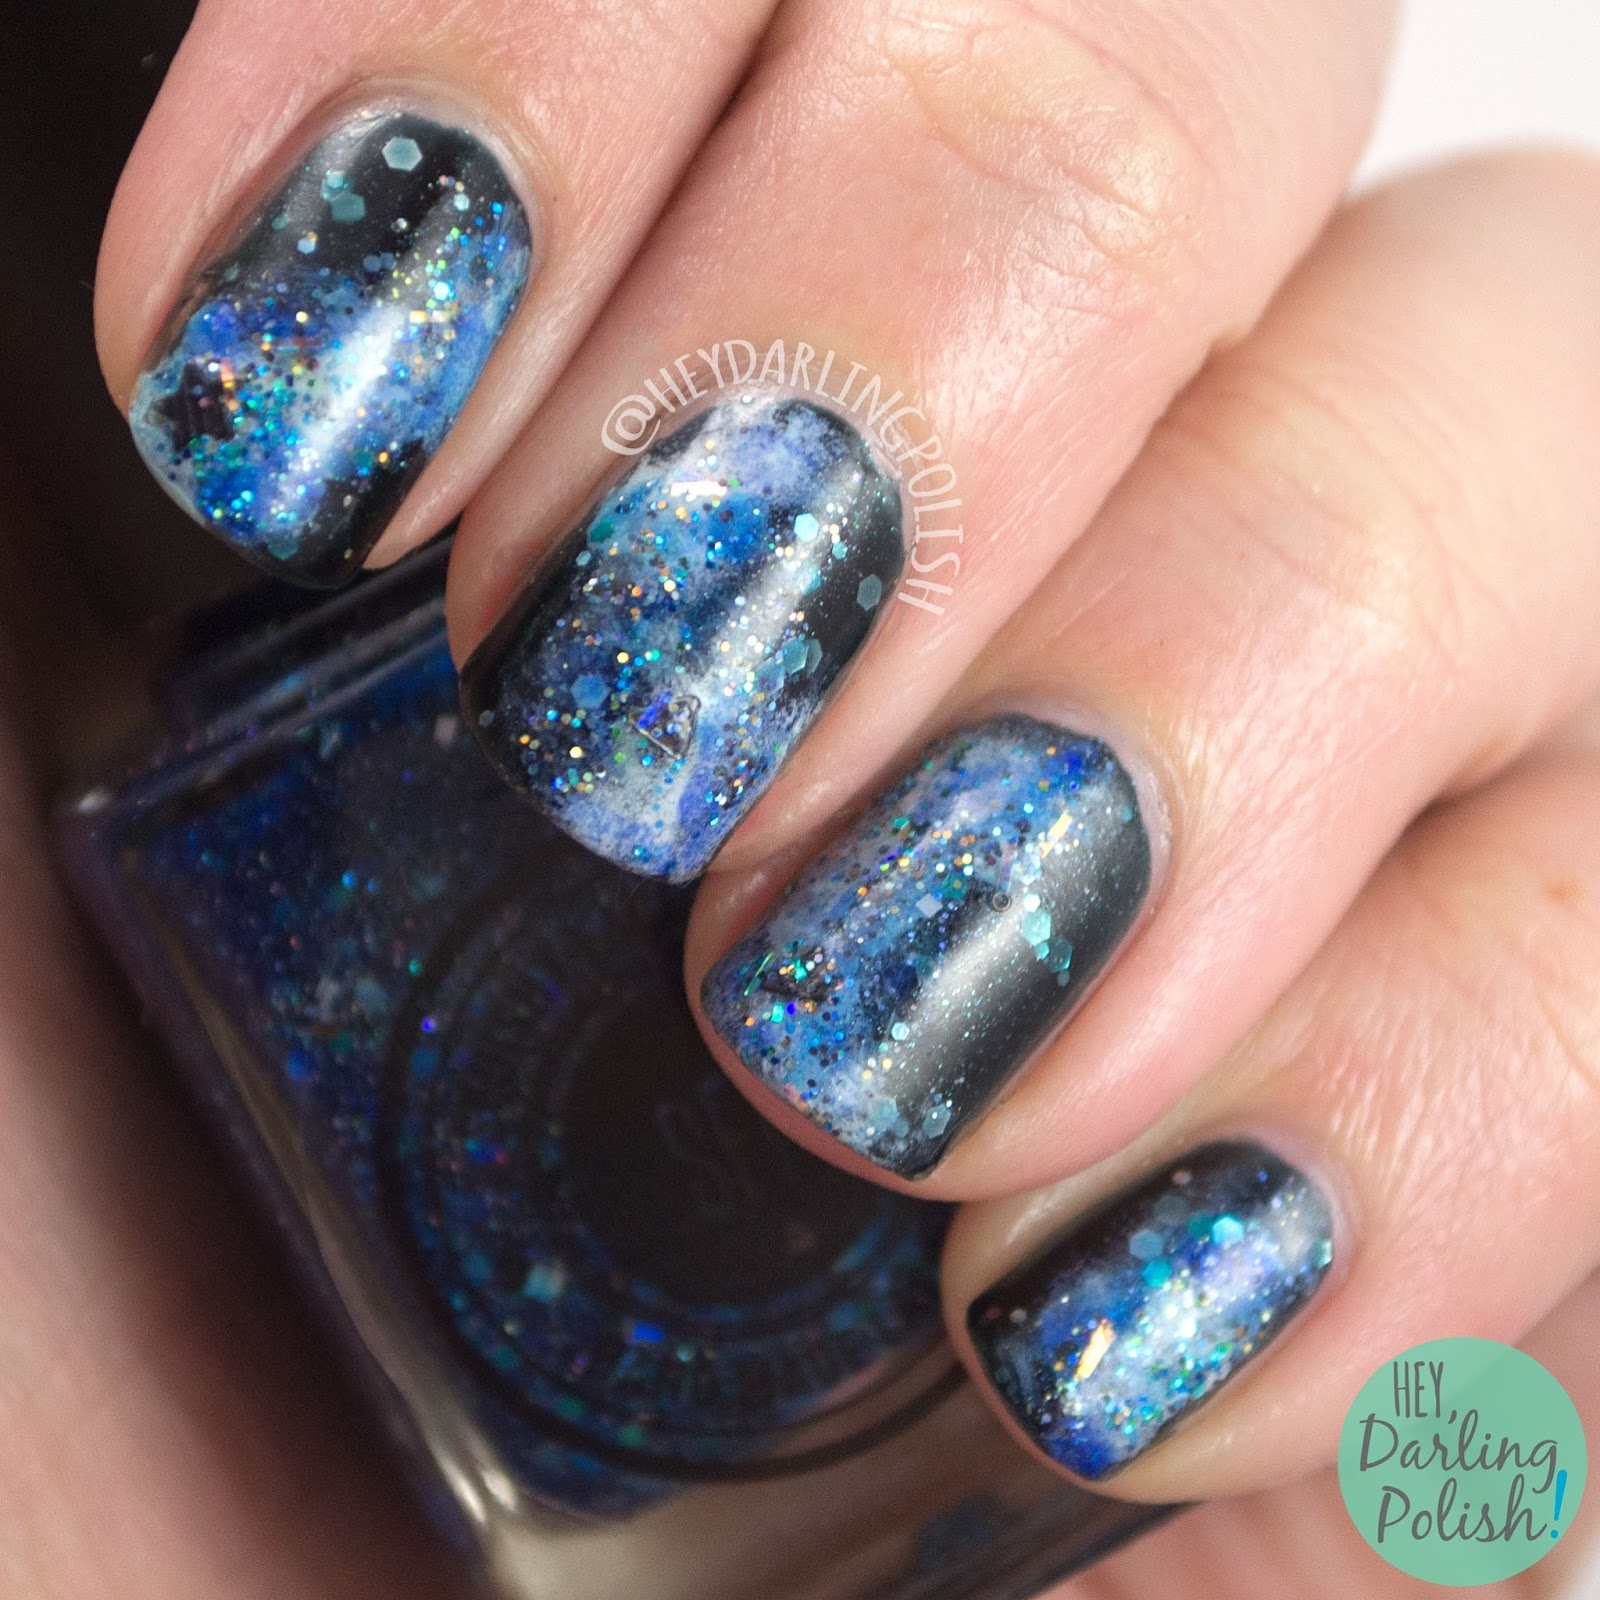 nails, nail art, nail polish, galaxy, galaxies, the nail art guild, glitter, blue, indie polish, hey darling polish